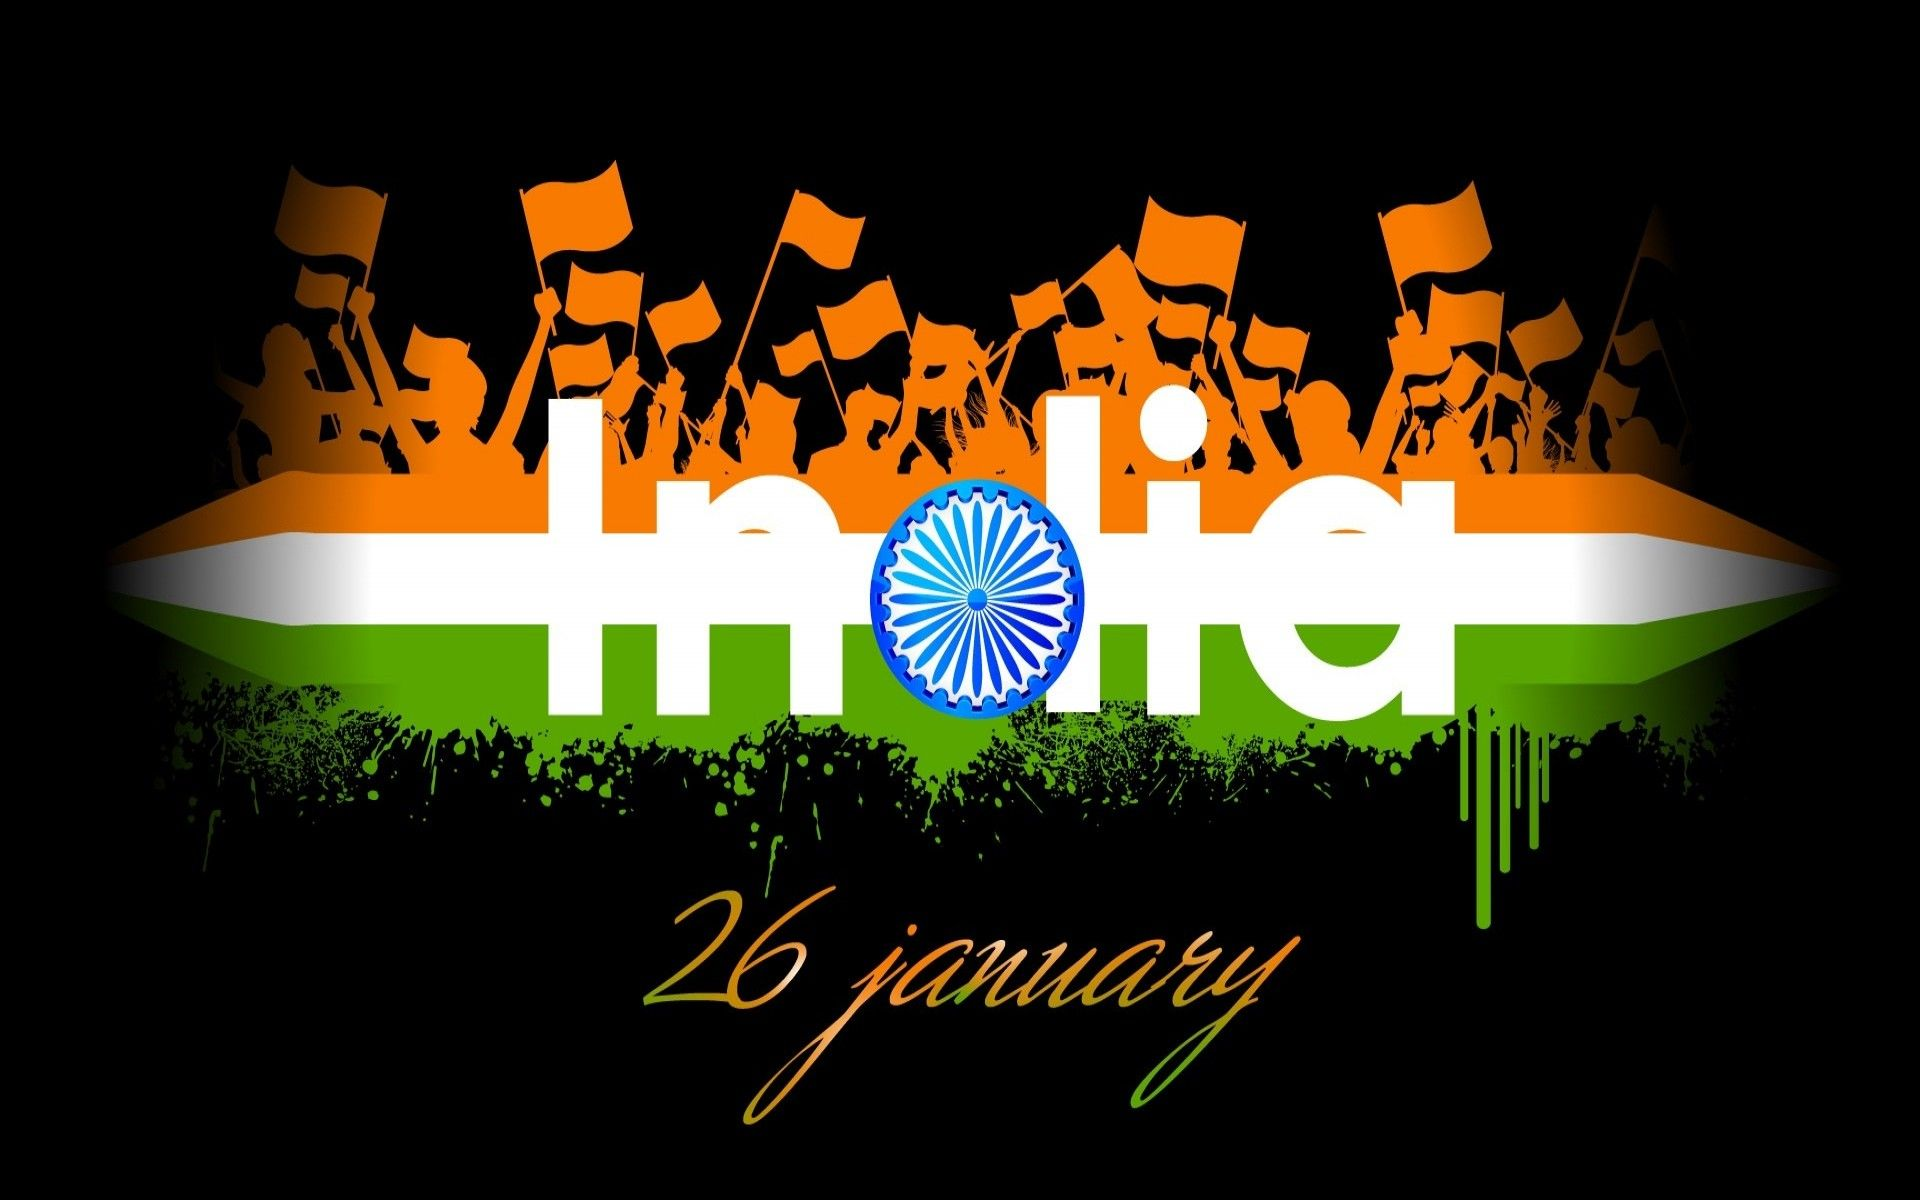 Download Republic Day Hd Wallpapers Images For Mobile And Pc India Republic Day Images Republic Day Message Republic Day